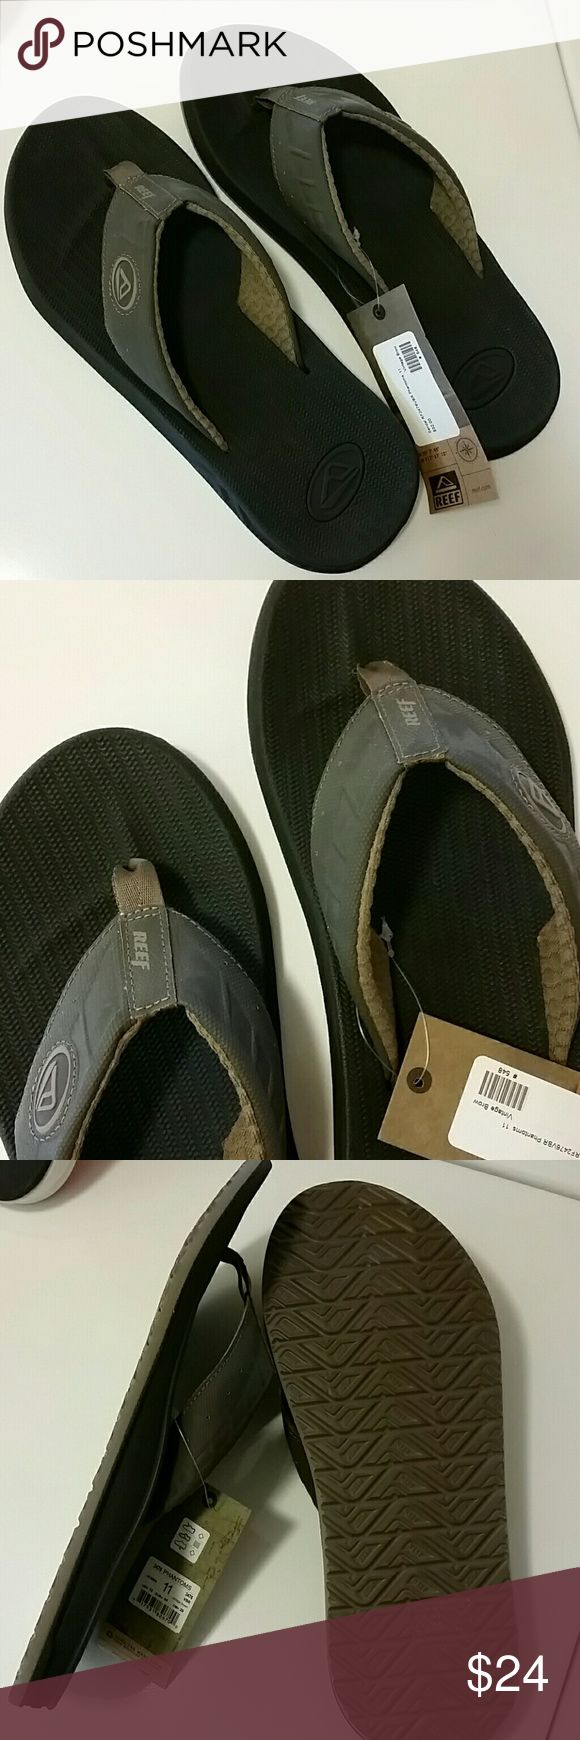 "NWT Men's Reef flip flops, Phantom, vintage brown New with tags  Men's Reef ""Phantoms"" ""Vintage Brown"" color Men's size 11 / EUR 44 Reef Shoes Sandals & Flip-Flops"